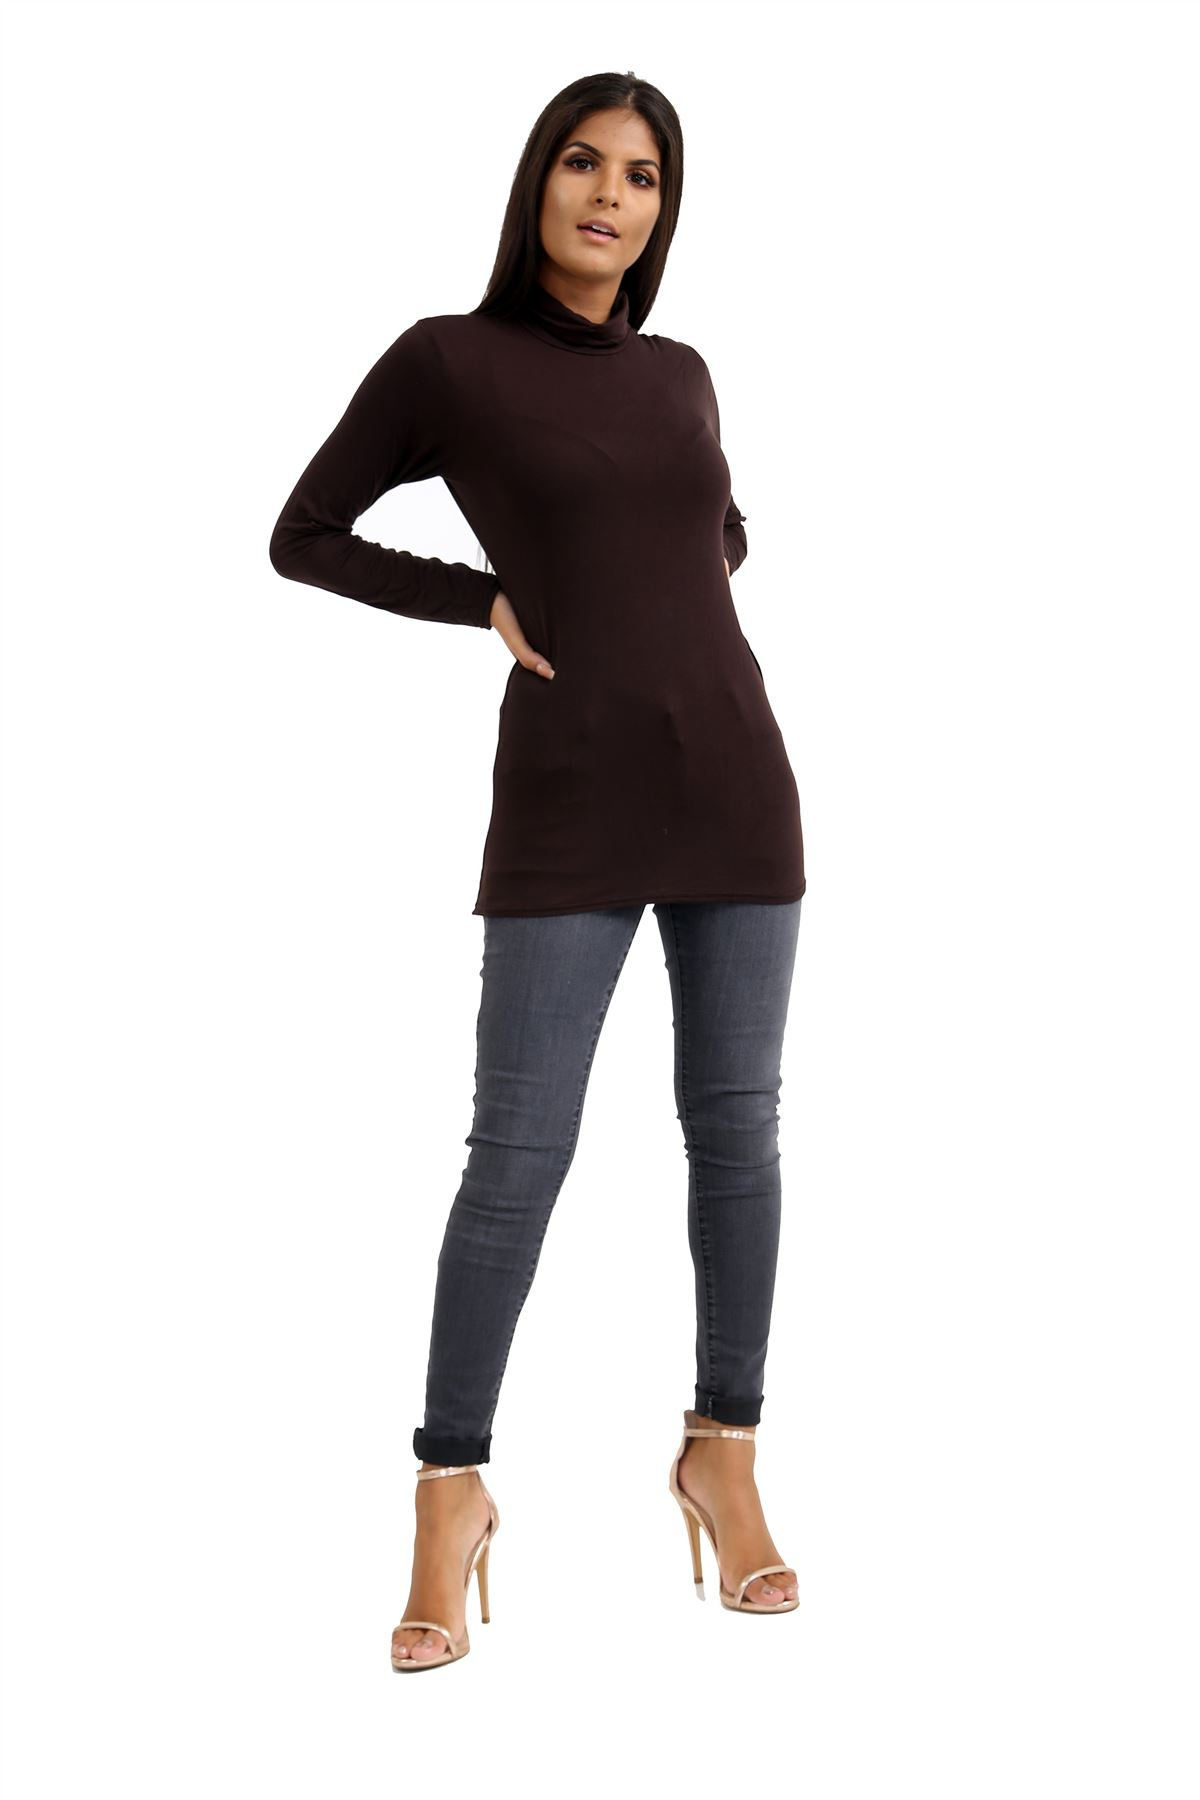 New-Ladies-Long-Sleeve-Plain-Turtle-Polo-Roll-Neck-Stretch-Jumper-T-Shirt-TeeTop thumbnail 31